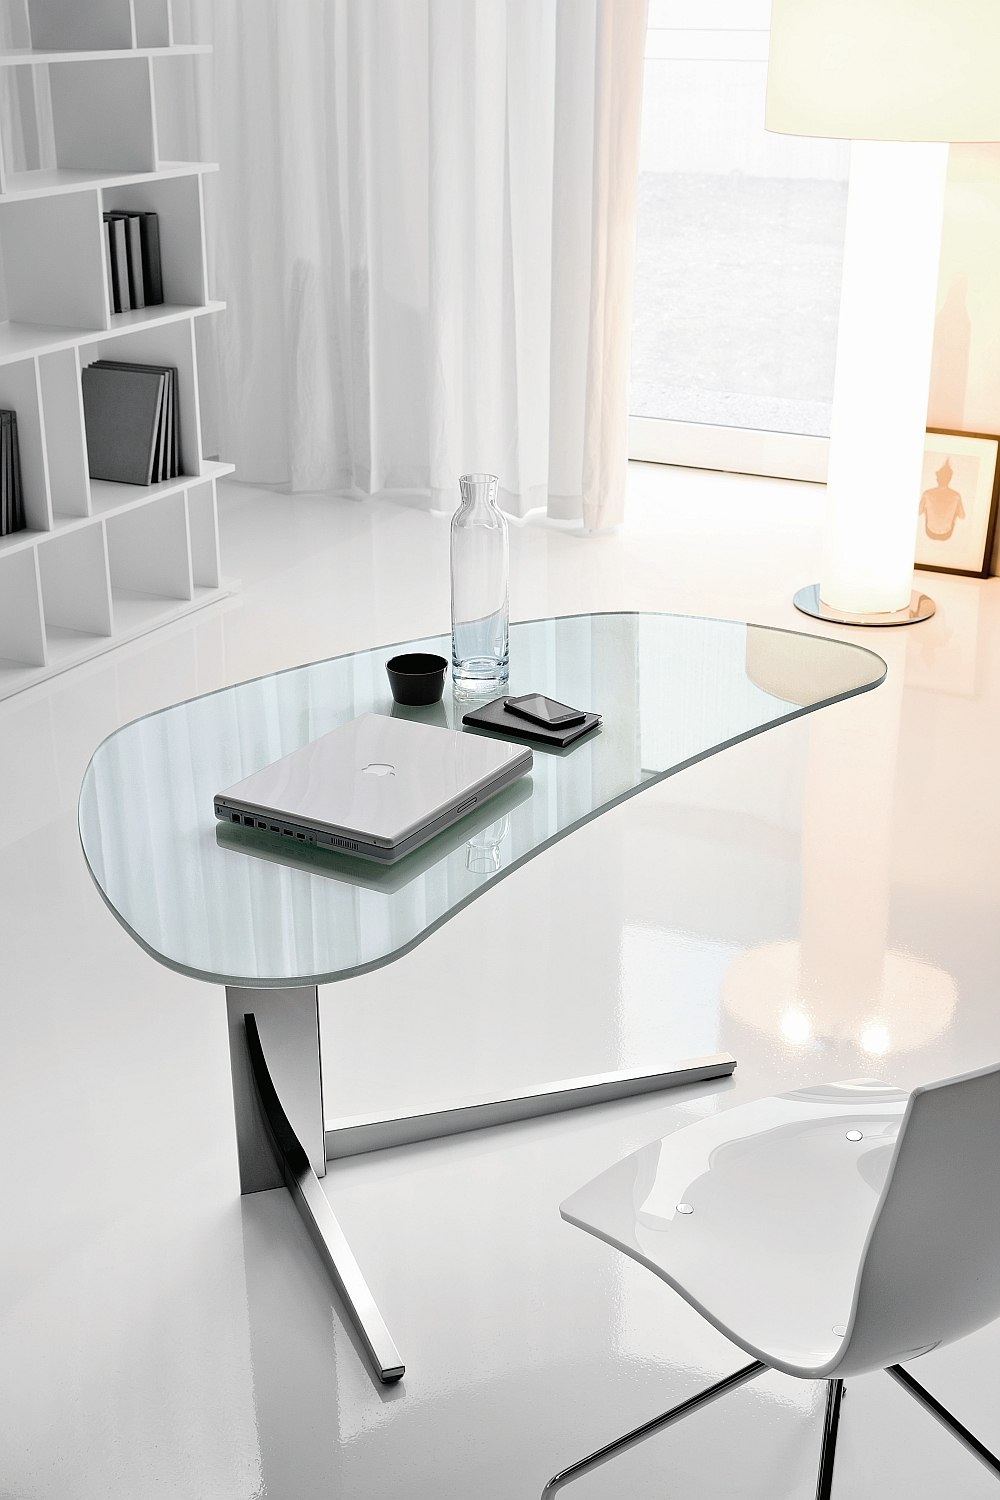 Smart worktop of the Island desk sets it apart from the crowd